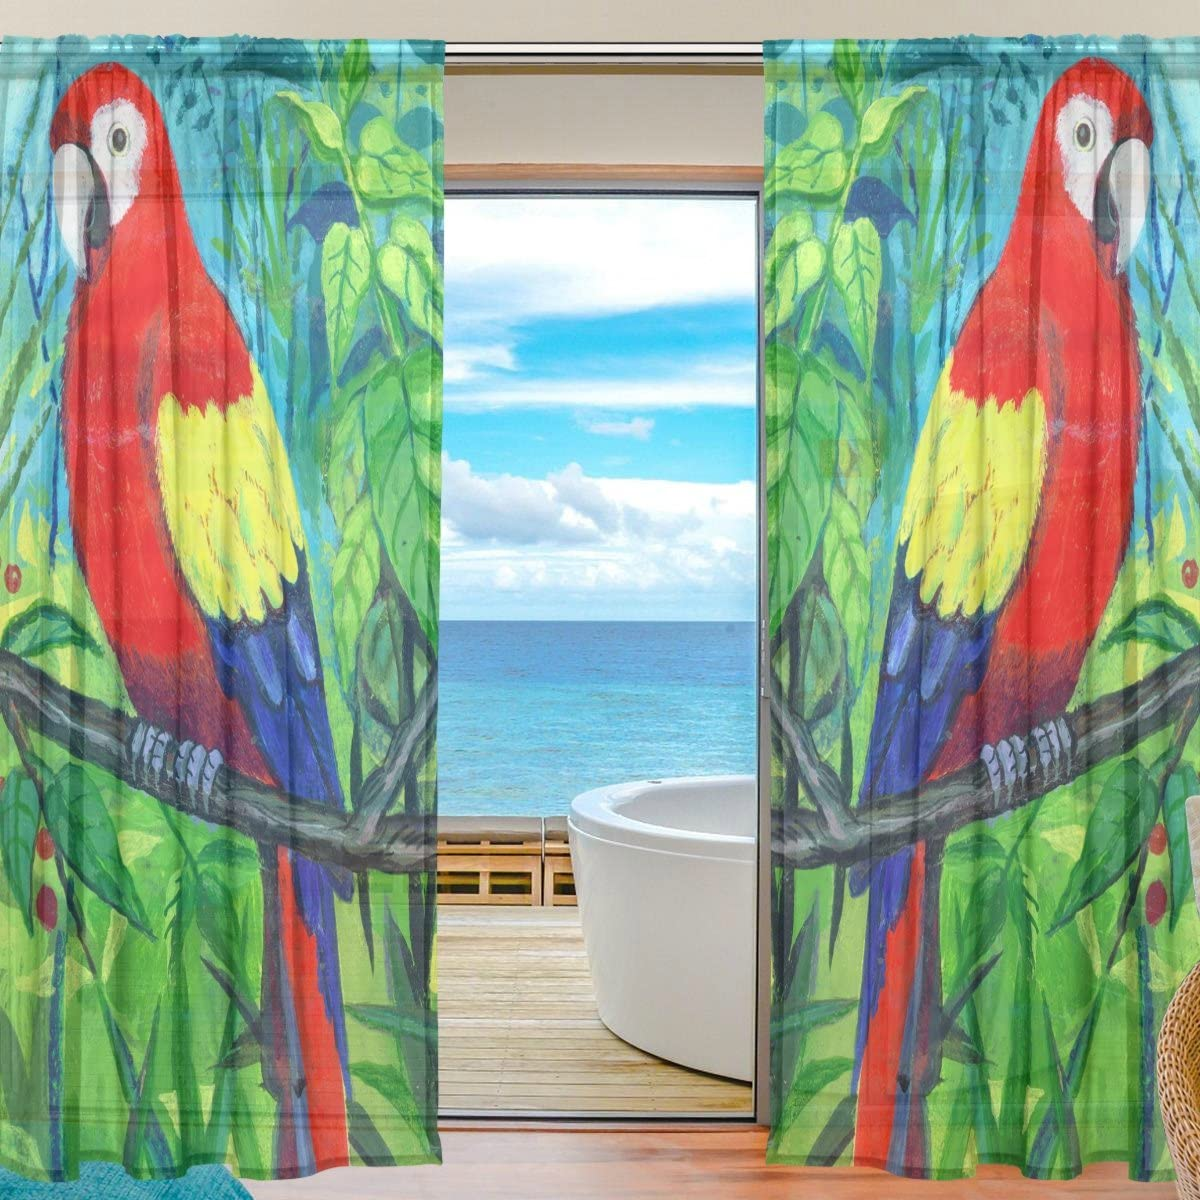 ALAZA Sheer Curtain Bird Parrot Art Painting Voile Tulle Window Curtain for Home Kitchen Bedroom Living Room 55×78 inches 2 panels